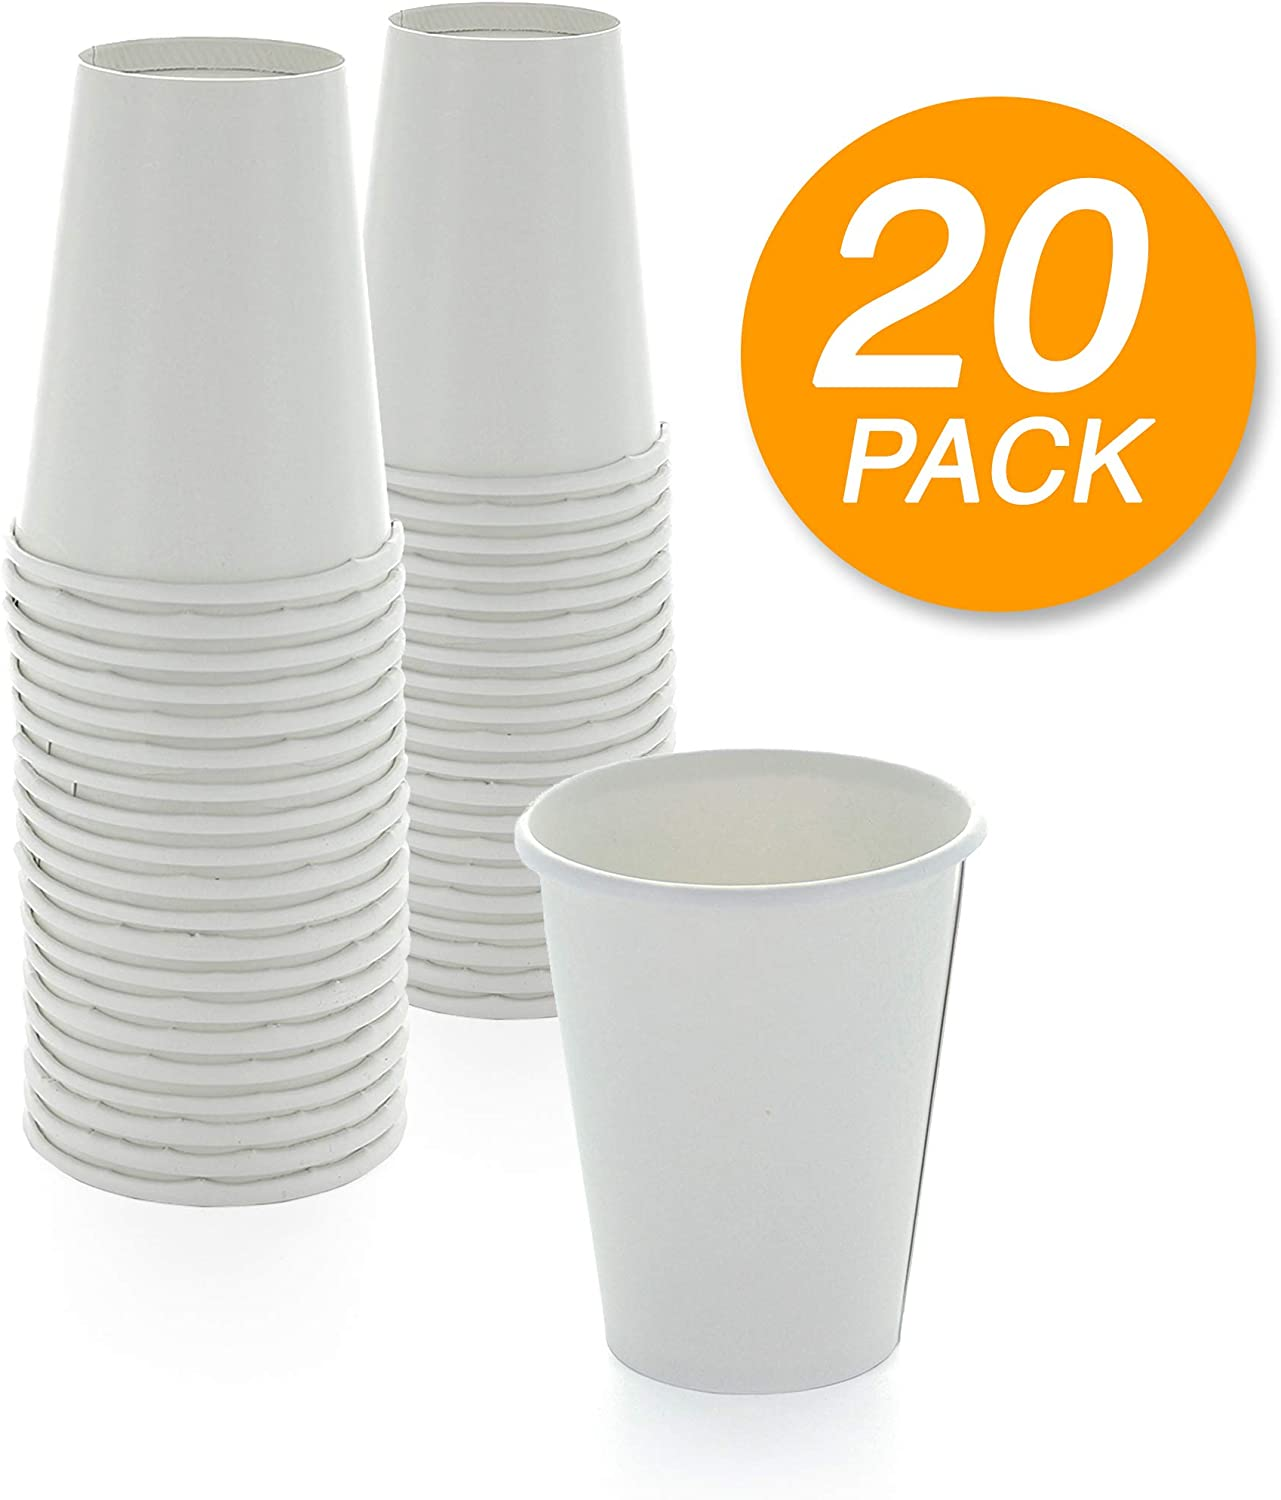 SparkSettings White Disposable Paper Cups Drinking Paper Cup for Both Hot and Cold Beverages Perfect for Coffee, Tea, Water or Juice - Frosty White, Pack of 20